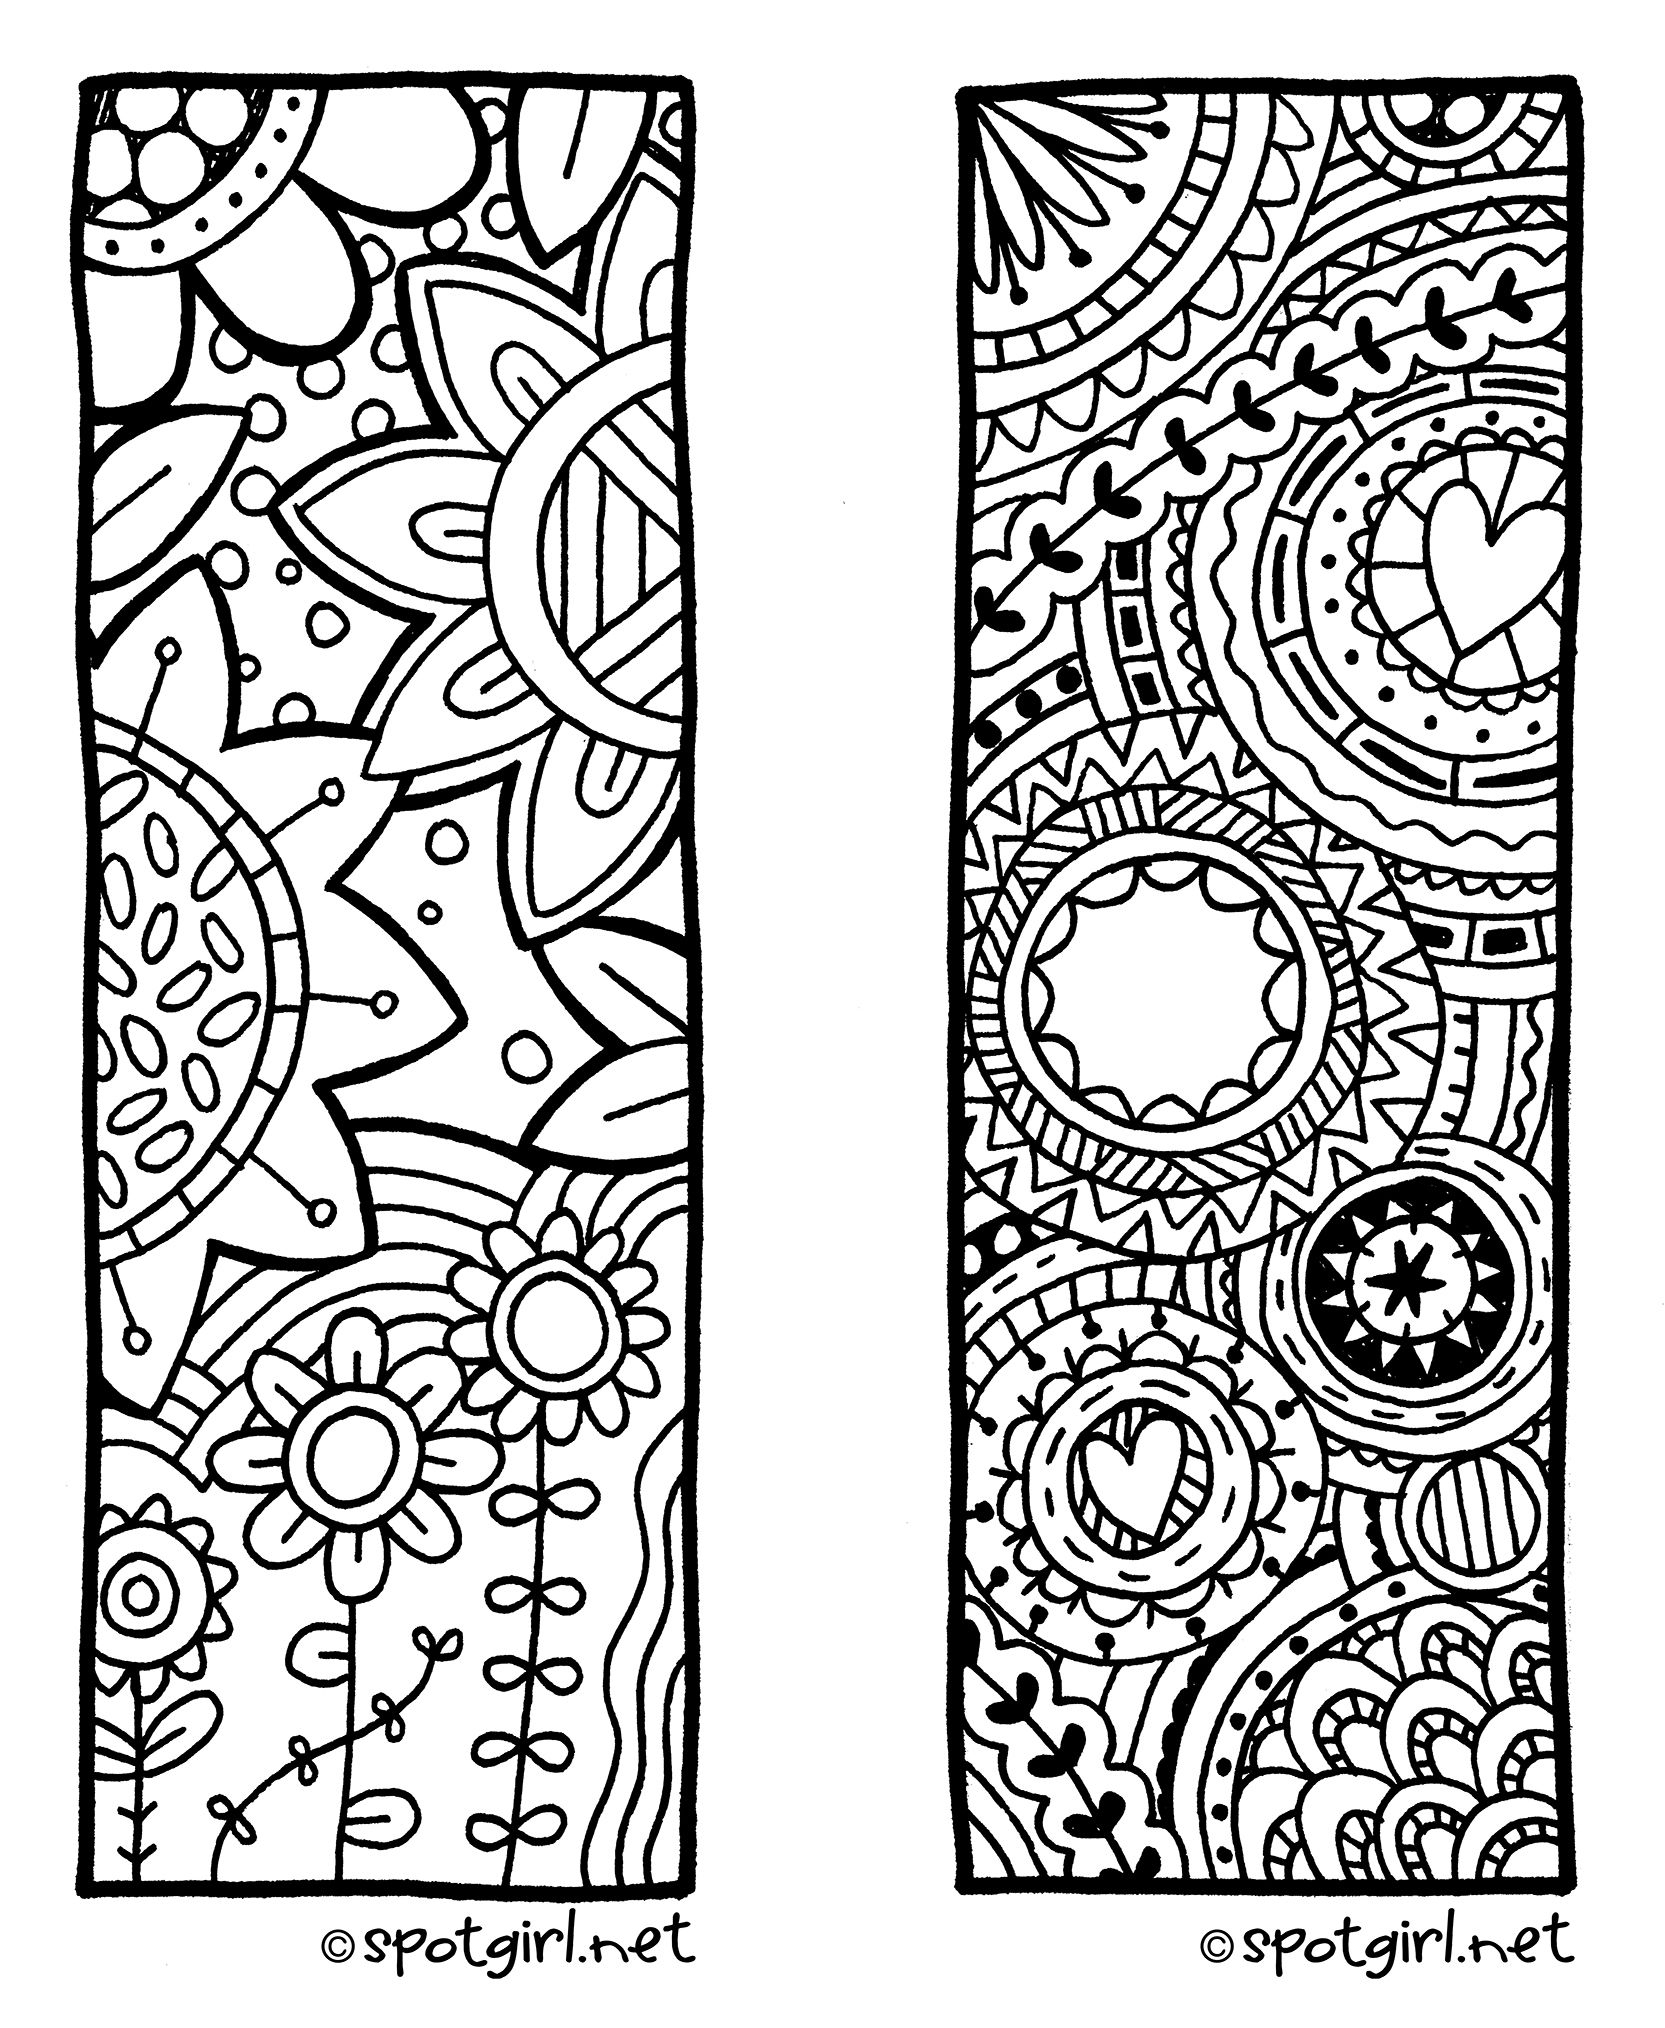 Zentangle Bookmark Printable From Spotgirl-Hotcakes.blogspot - Free Printable Zentangle Templates